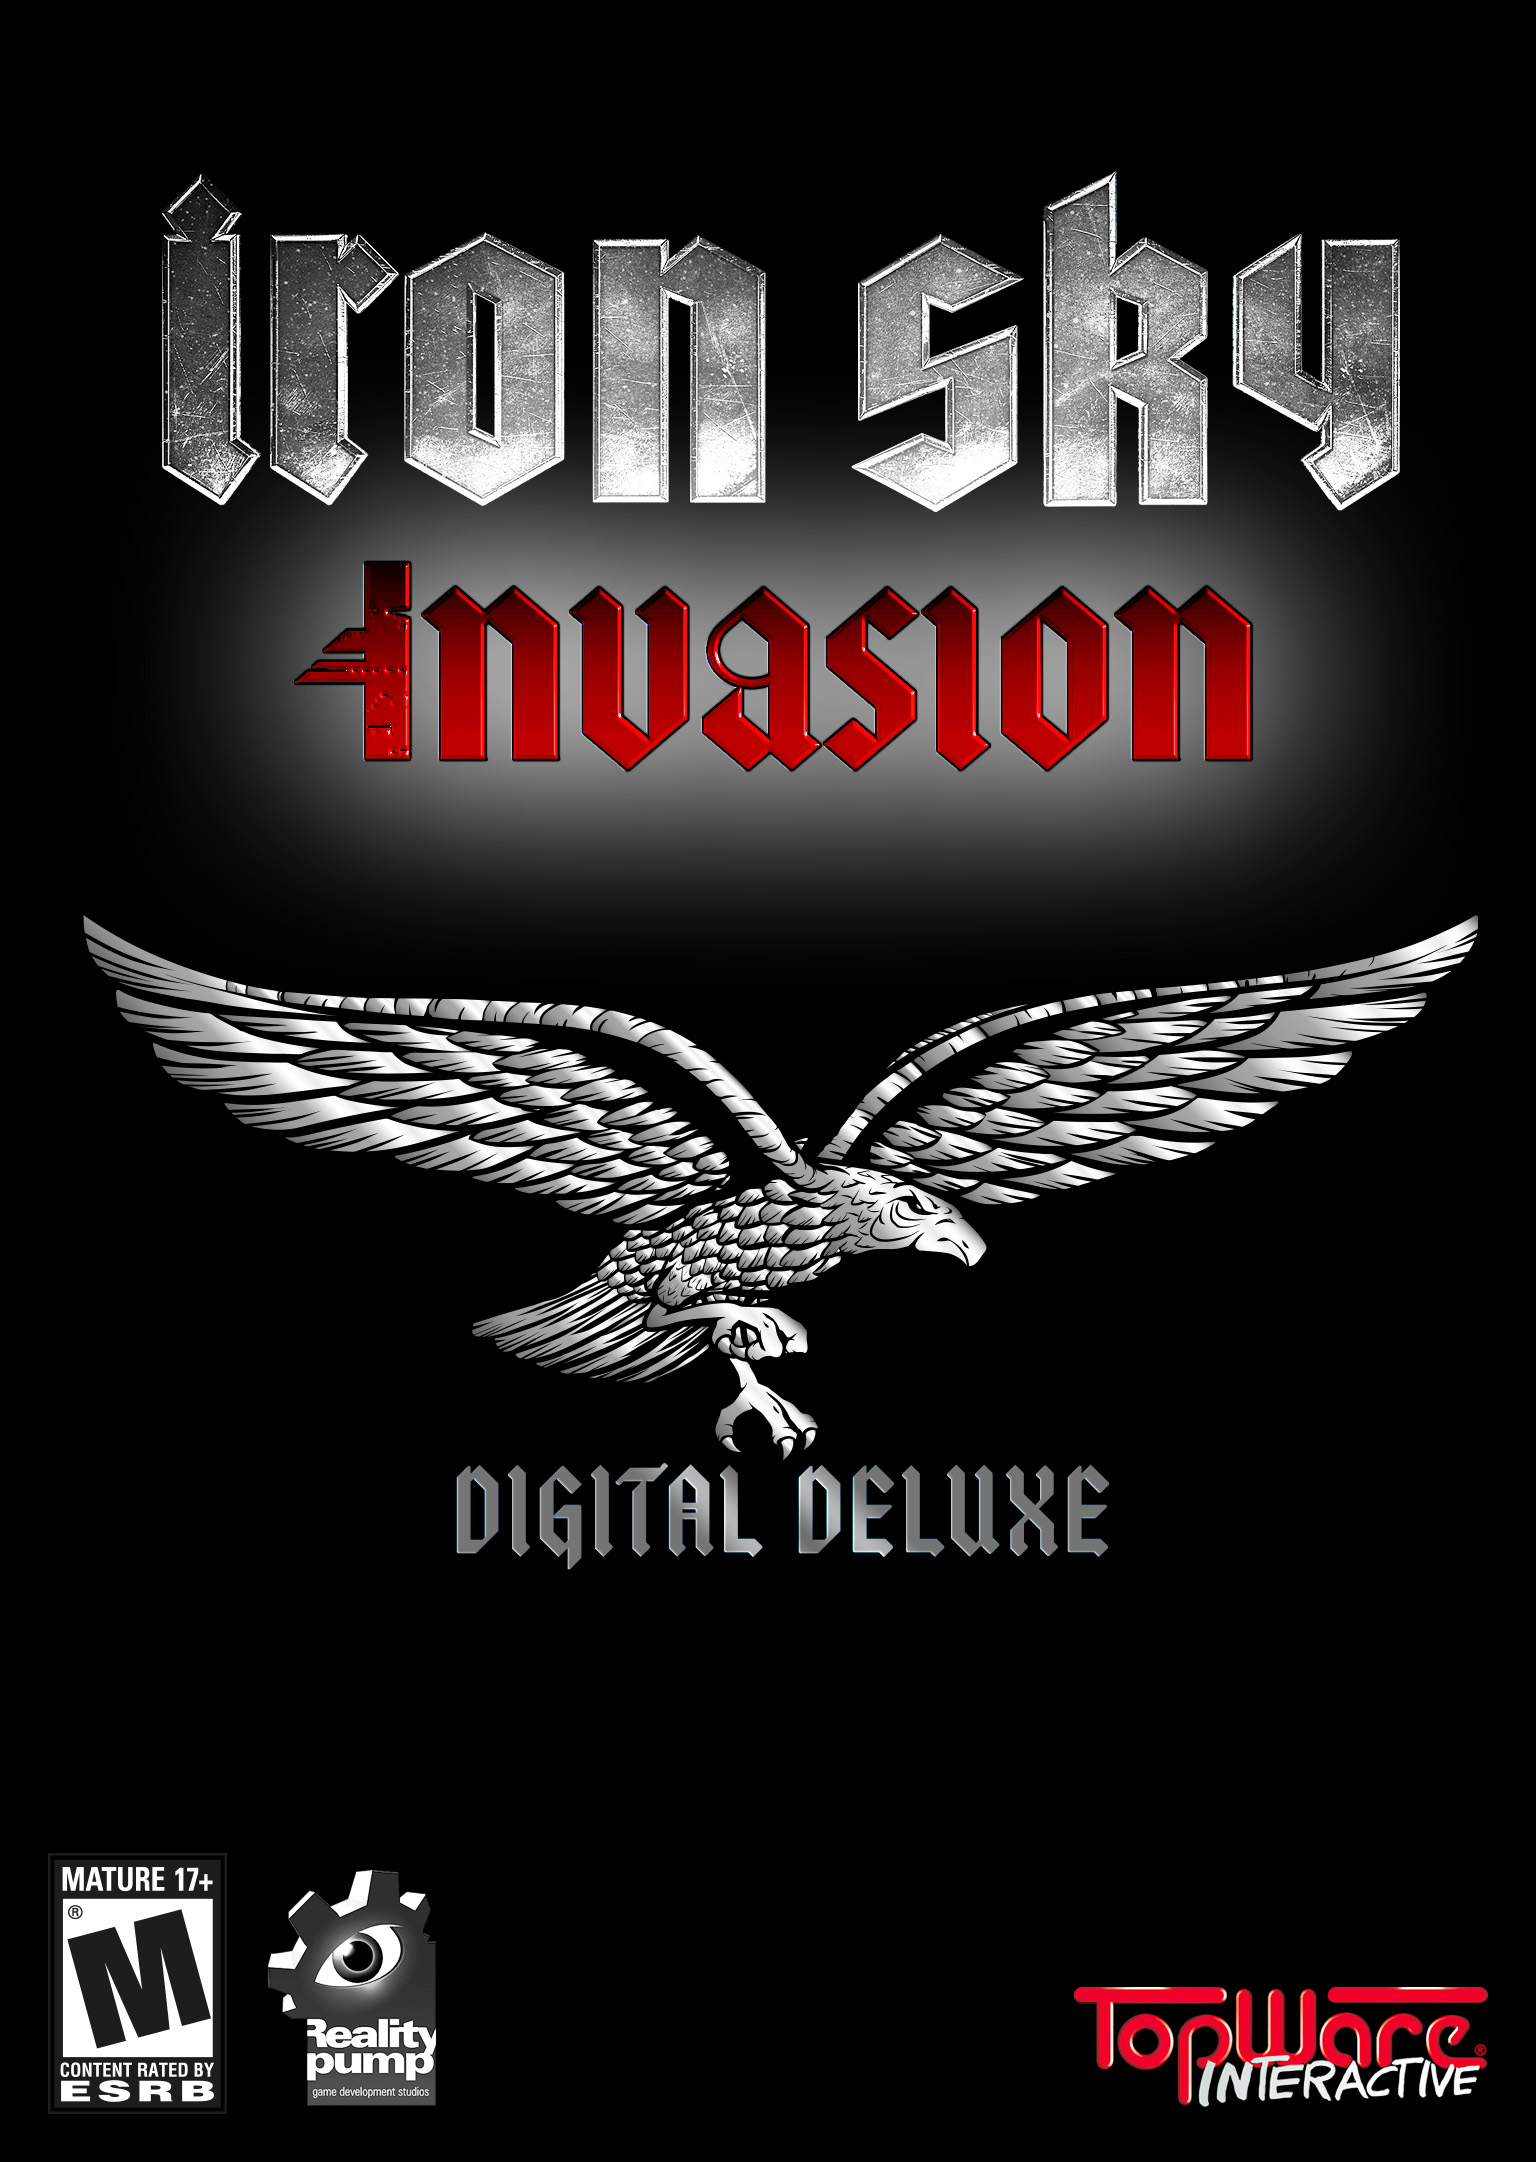 Iron Sky Invasion - Digital Deluxe DLC [Steam]